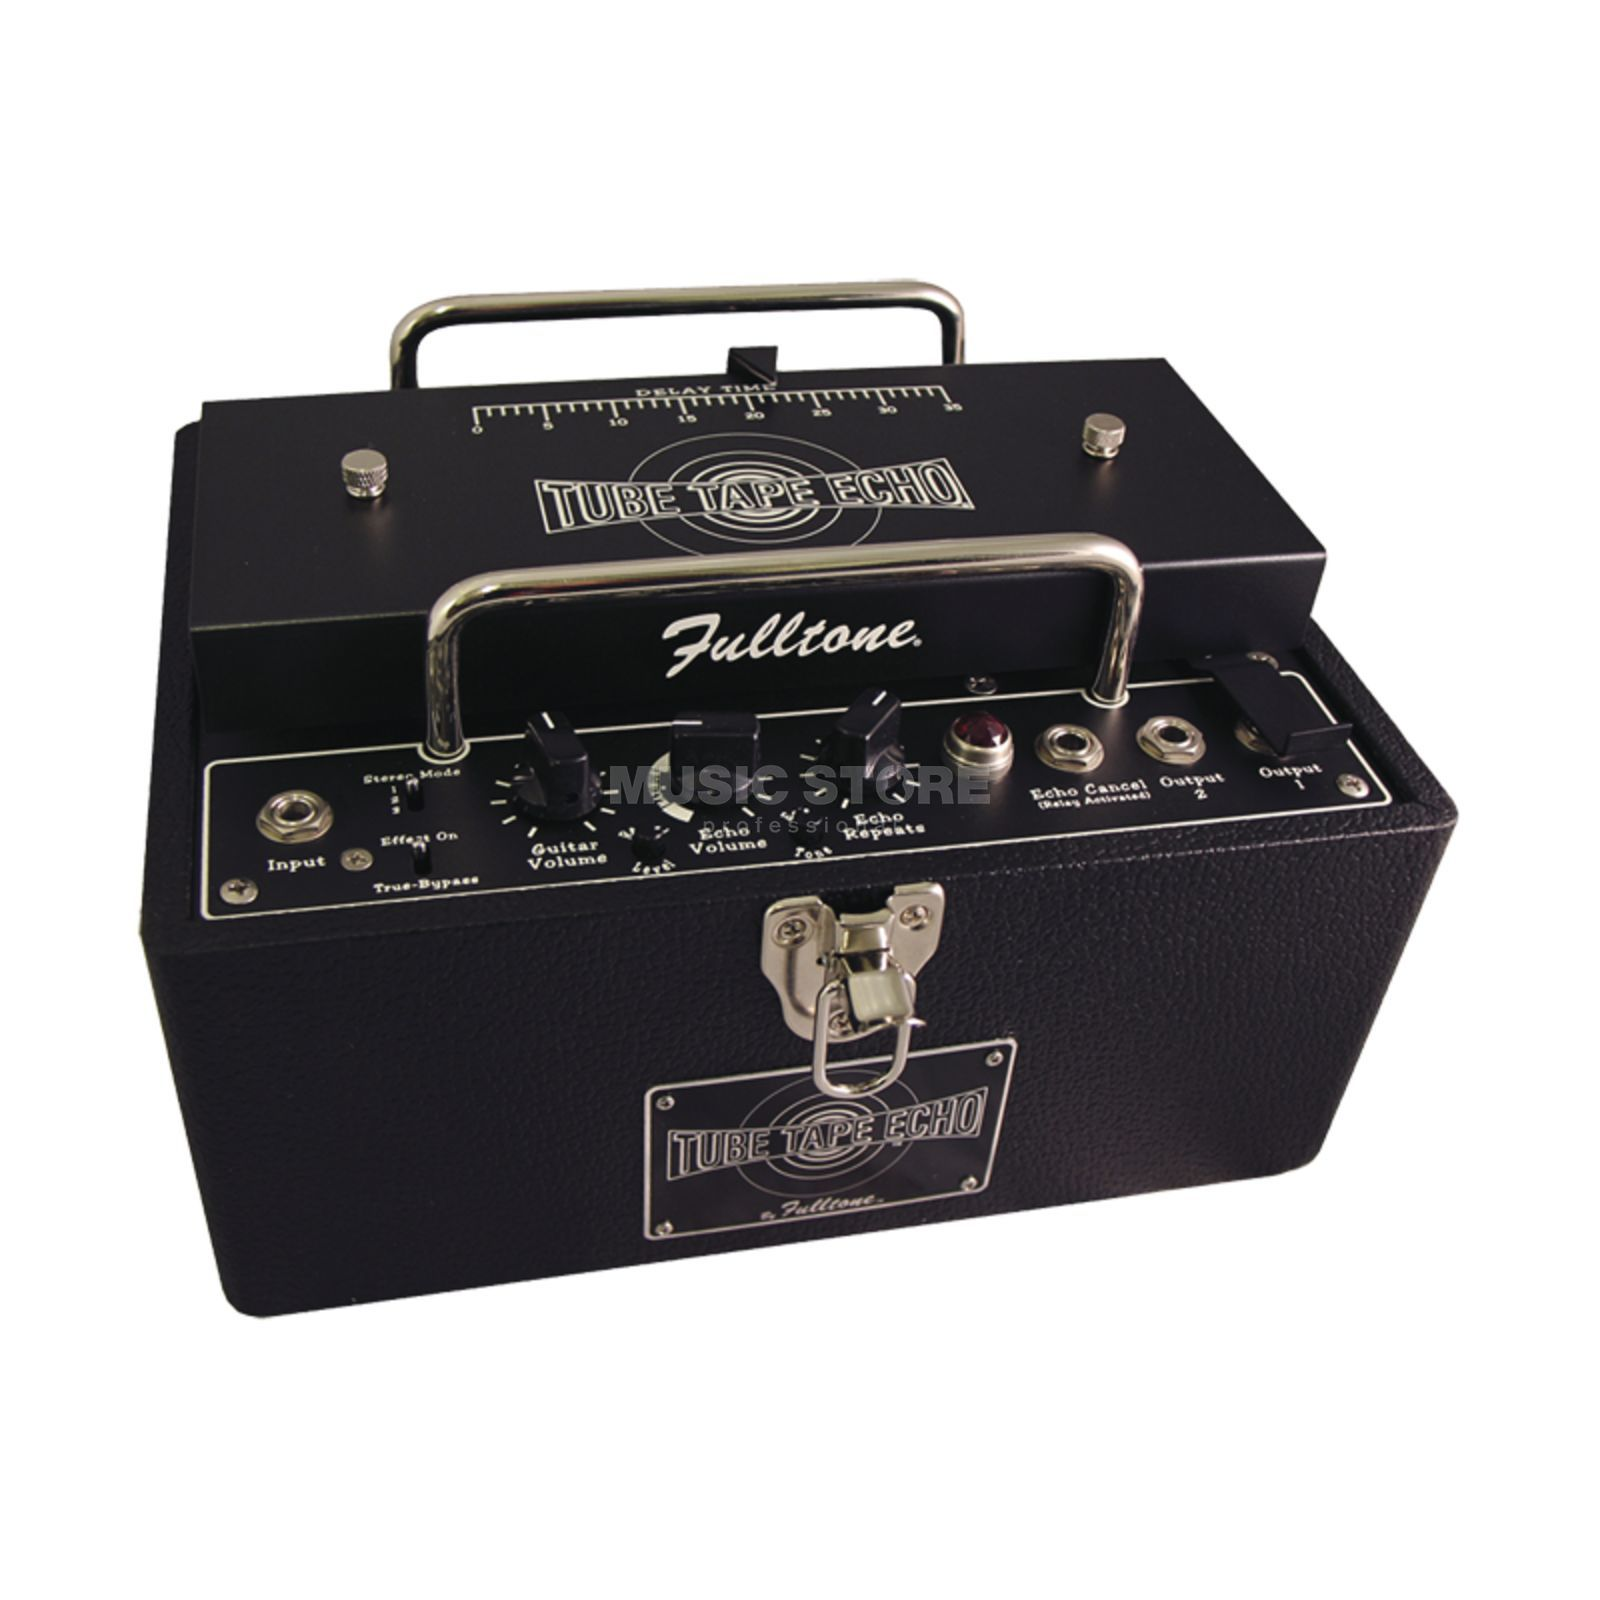 Fulltone Tube Tape Echo 2.0 Fulltone Custom Shop Produktbild